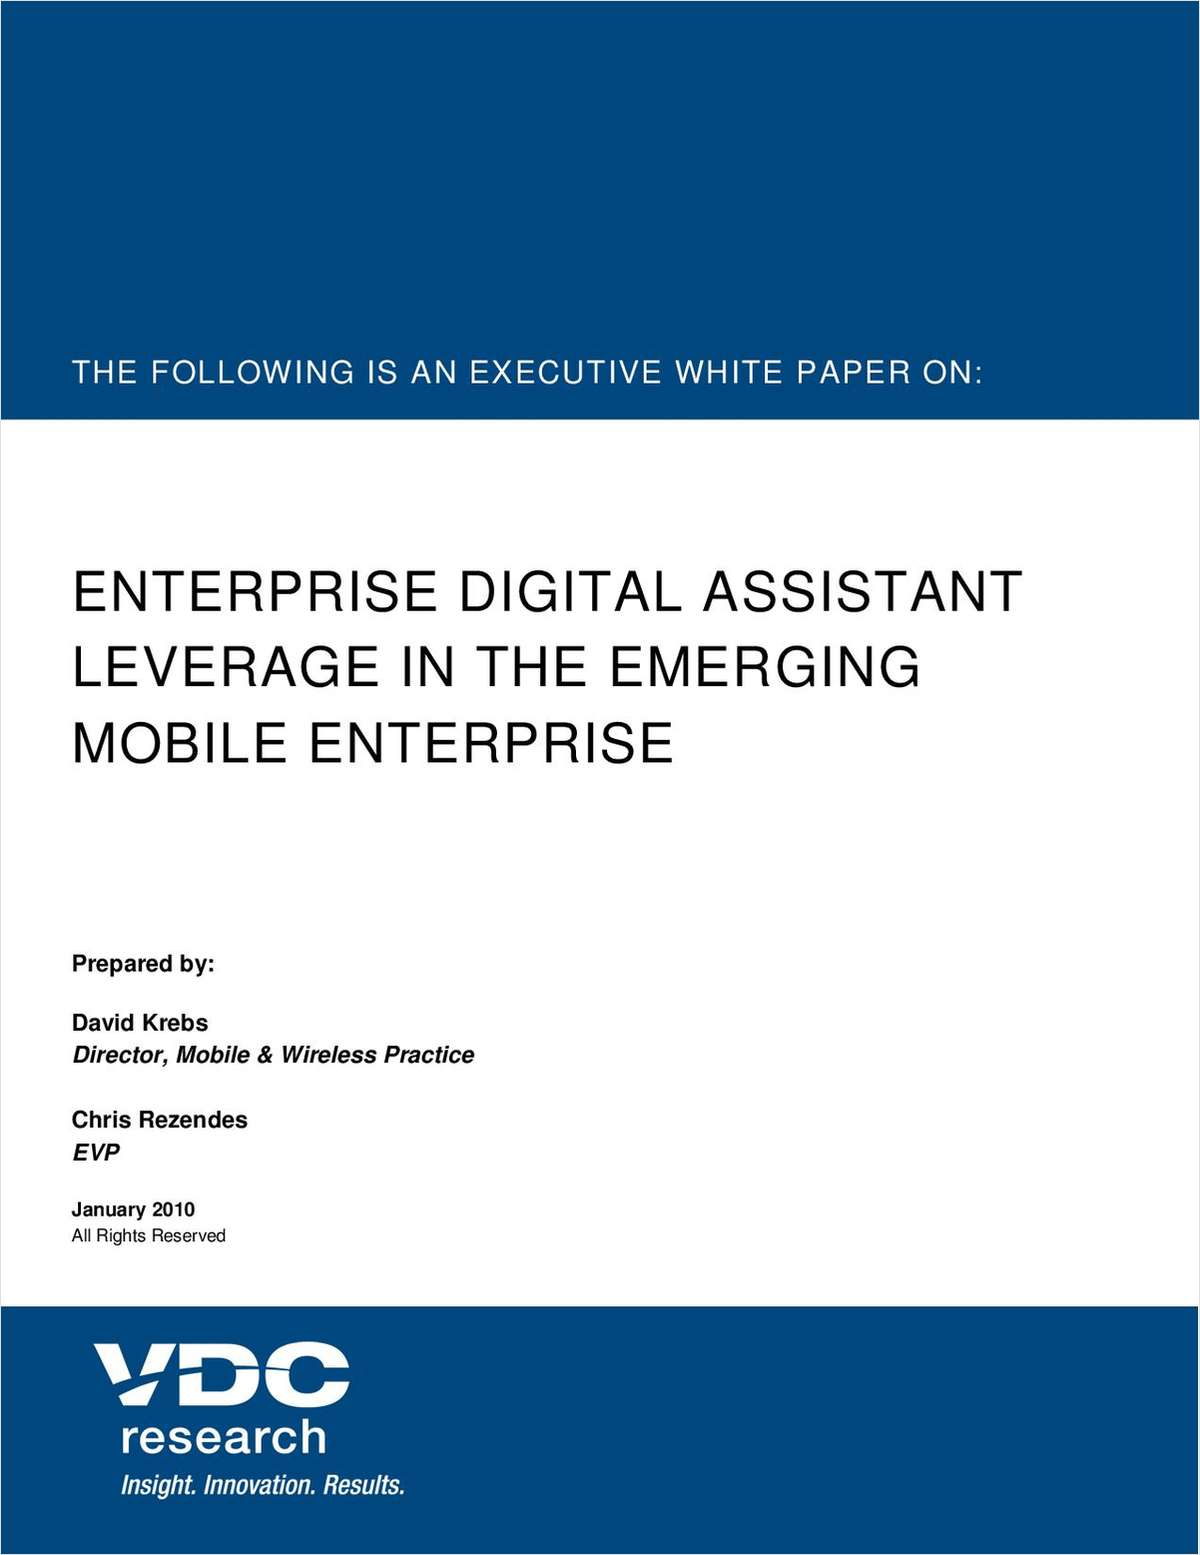 How Different Is Life with an Enterprise Digital Assistant?